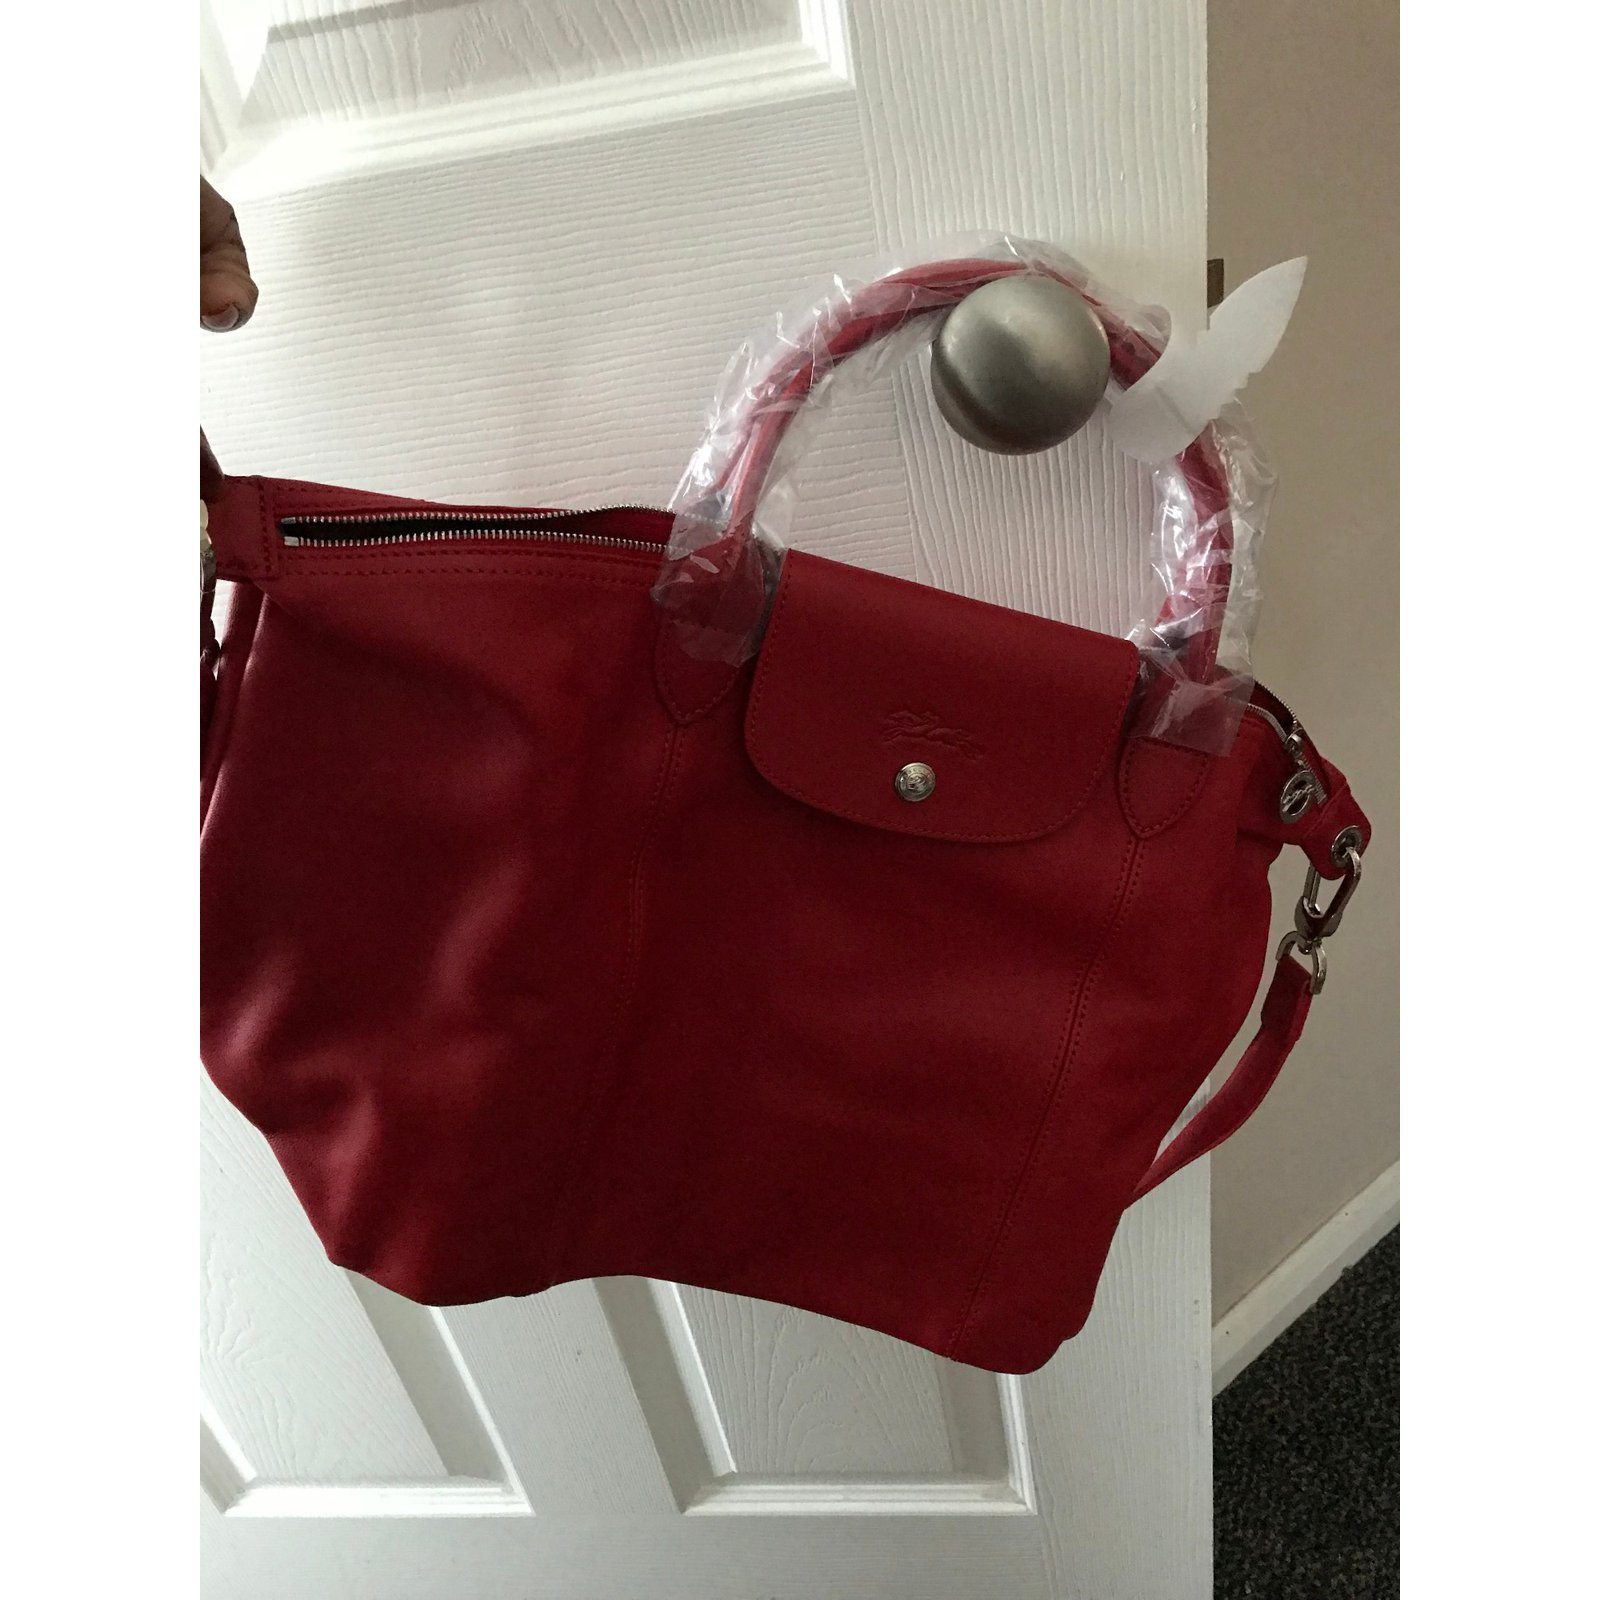 6ab5ec7a4f1b Facebook · Pin This. Longchamp Le Pliage Cuir leather shopper - Red- New  with tags Handbags Leather Red ref